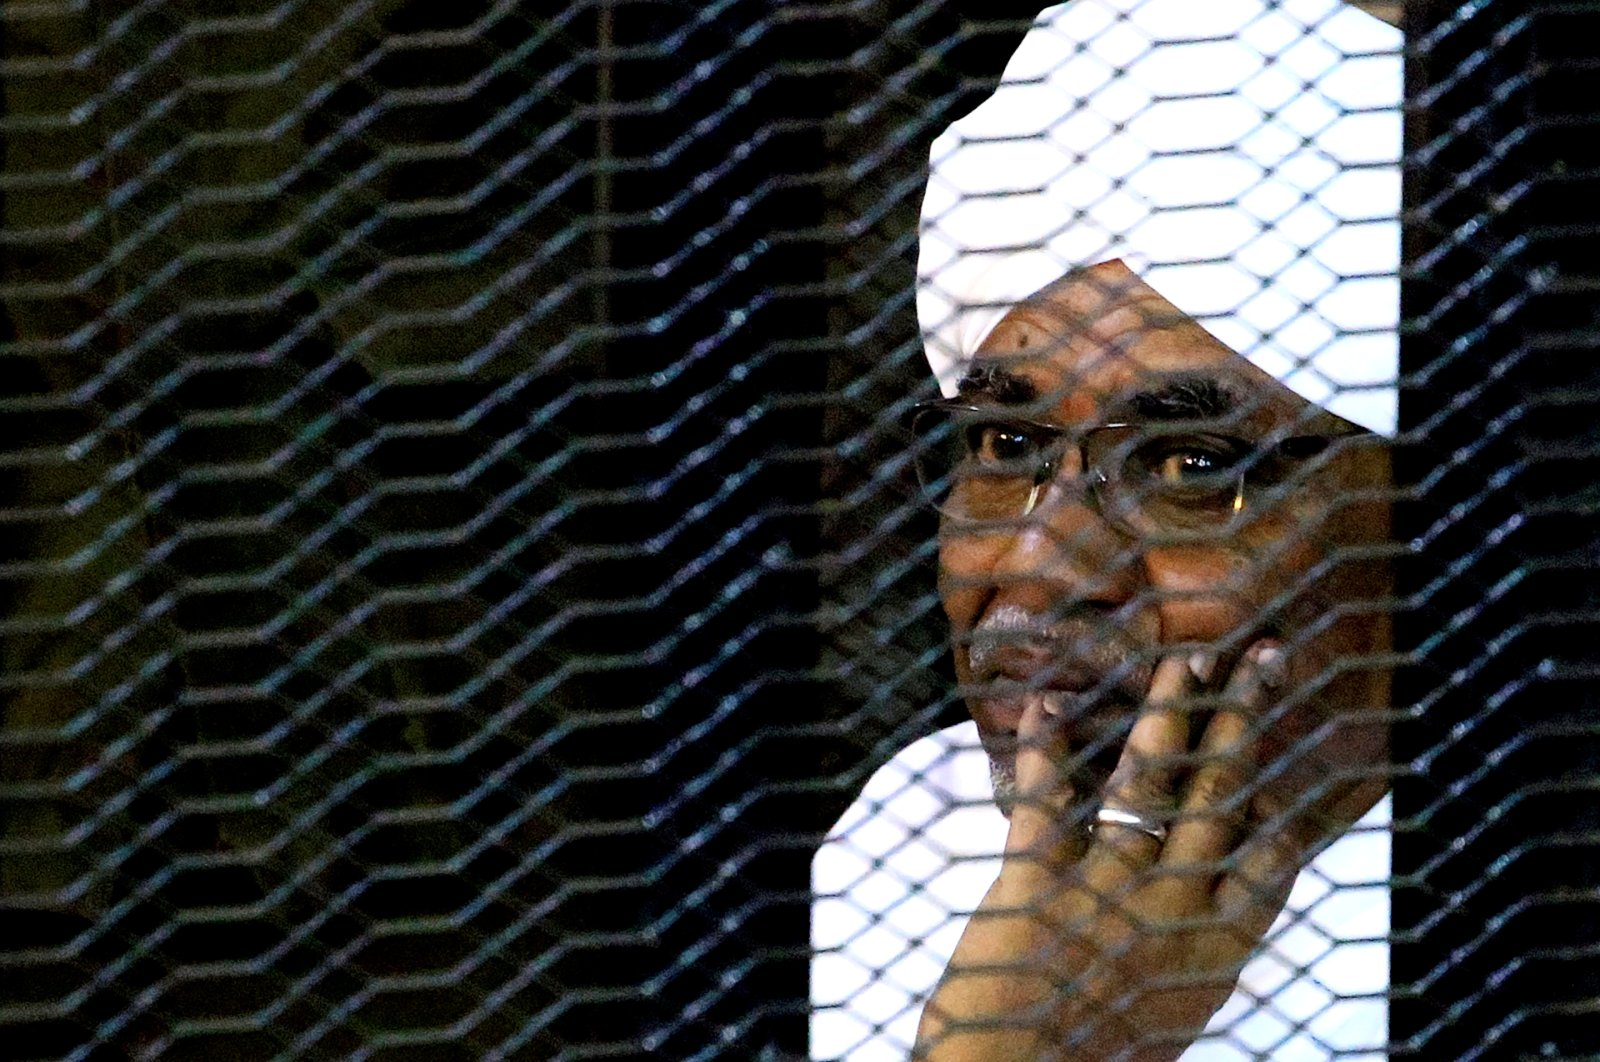 Sudan's former President Omar Hassan al-Bashir sits inside a cage at the courthouse where he is facing corruption charges, Khartoum, Sudan, Sept. 28, 2019. (Reuters File Photo)